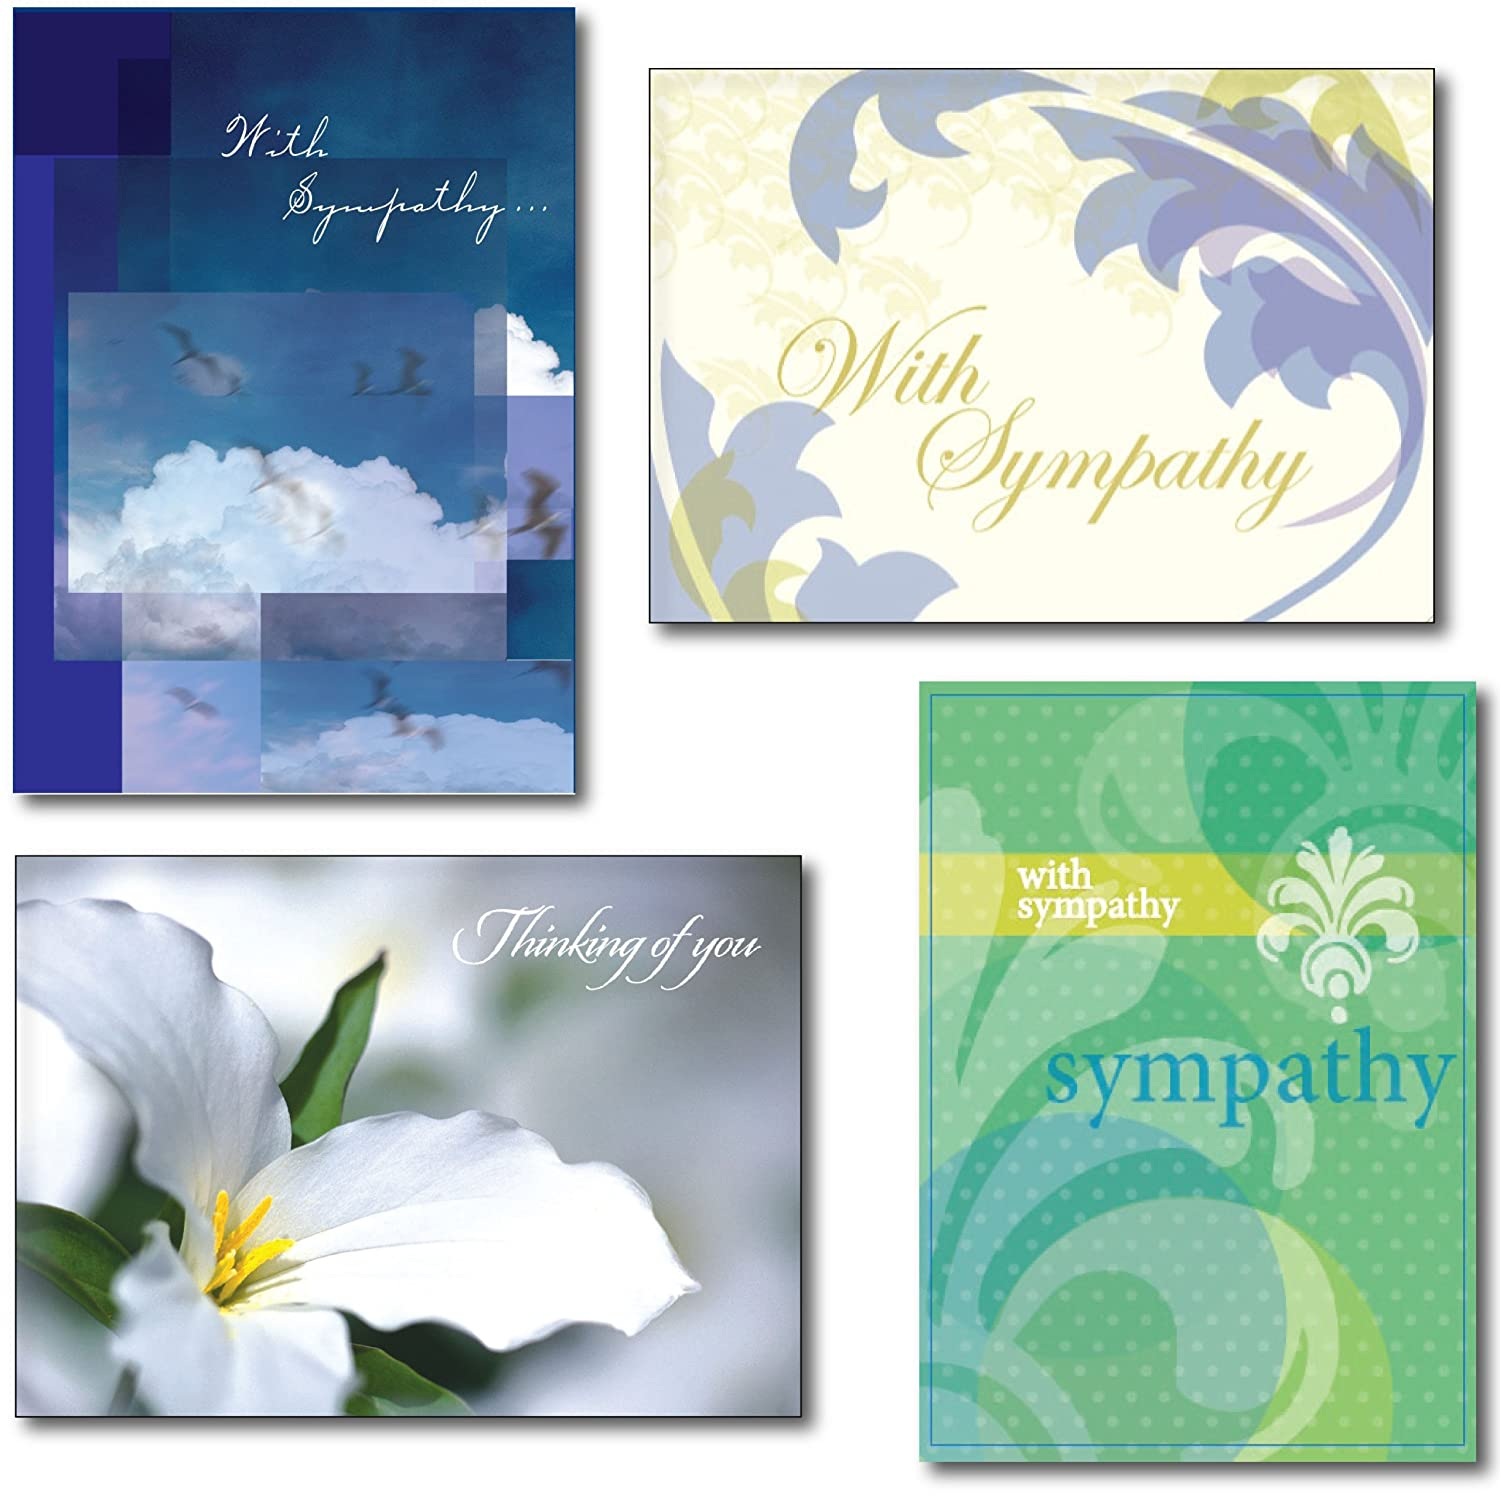 Sympathy card messages life support sympathy greeting card assortment m4hsunfo